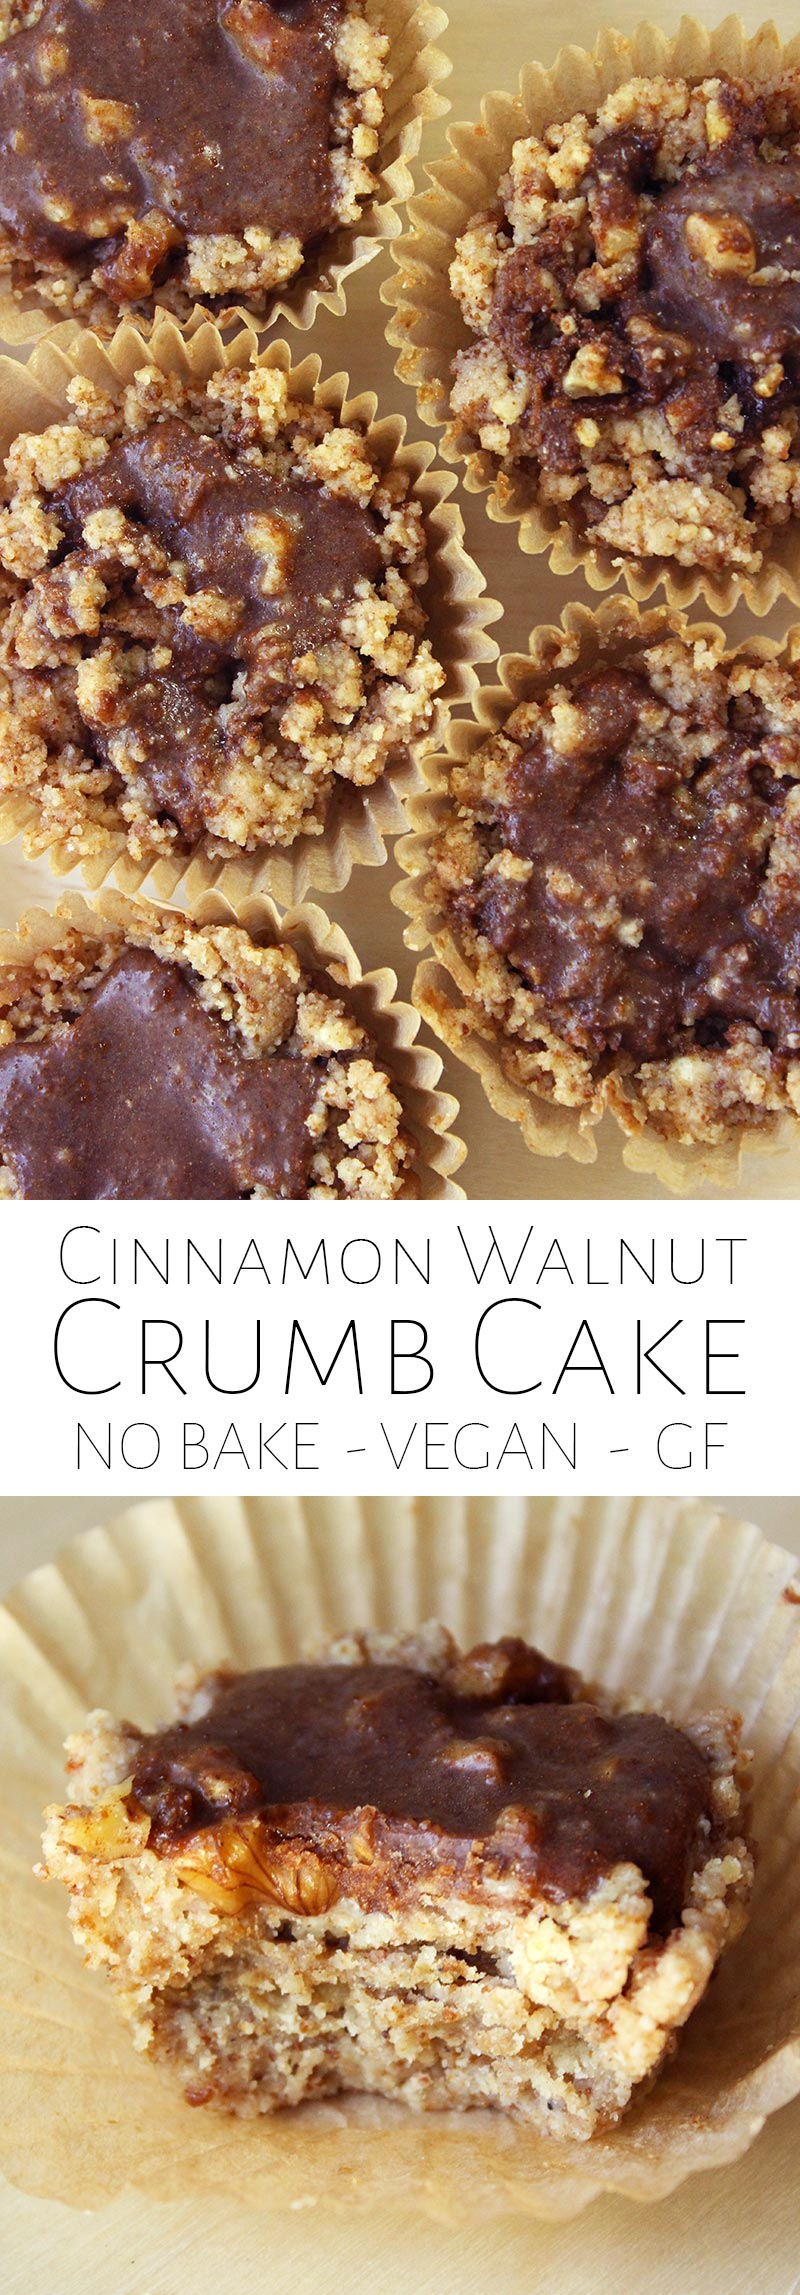 No Bake Cinnamon Walnut Crumb Cake